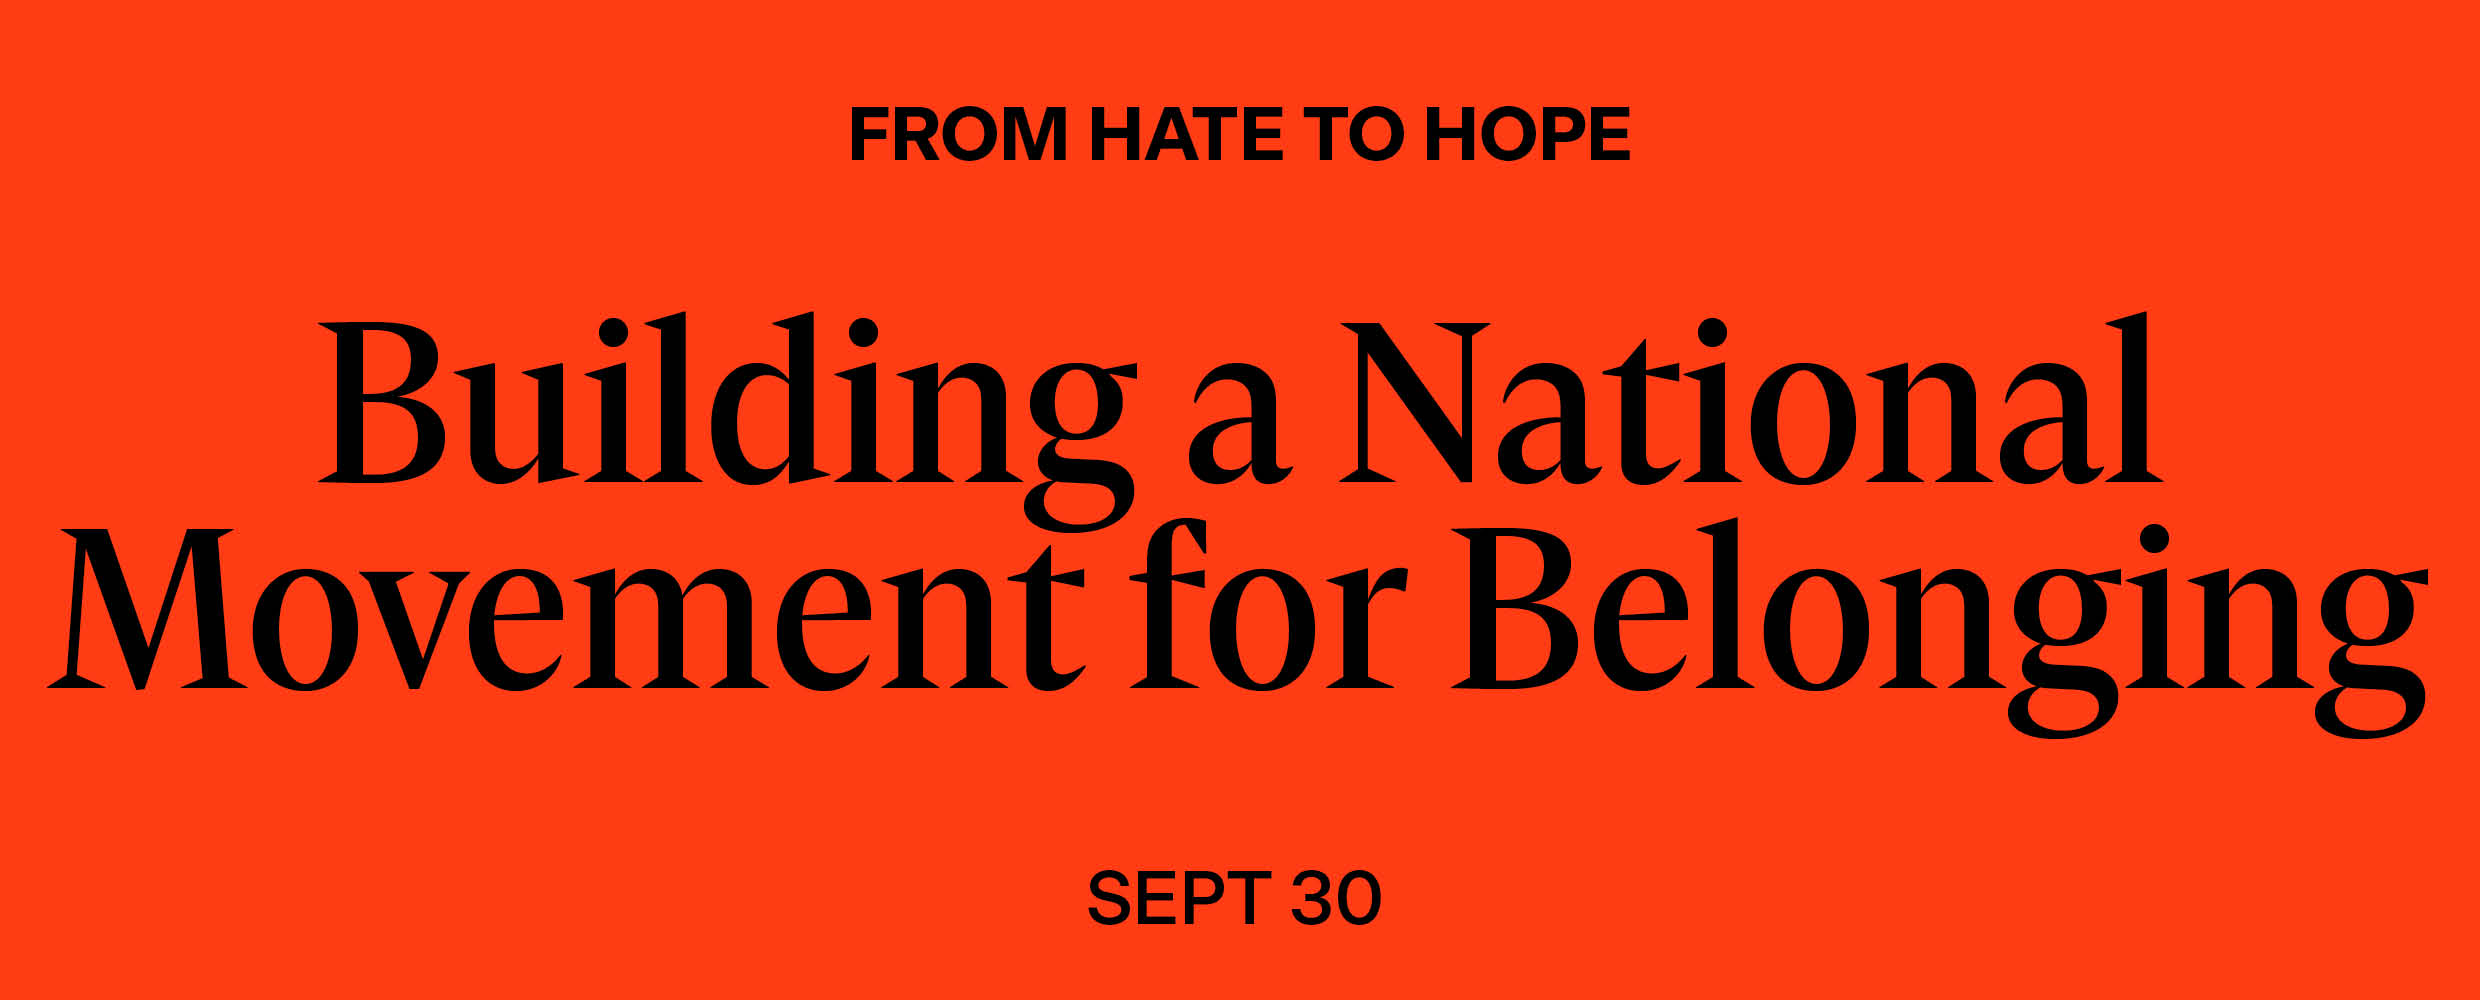 From Hate to Hope: Building a National Movement for Belonging